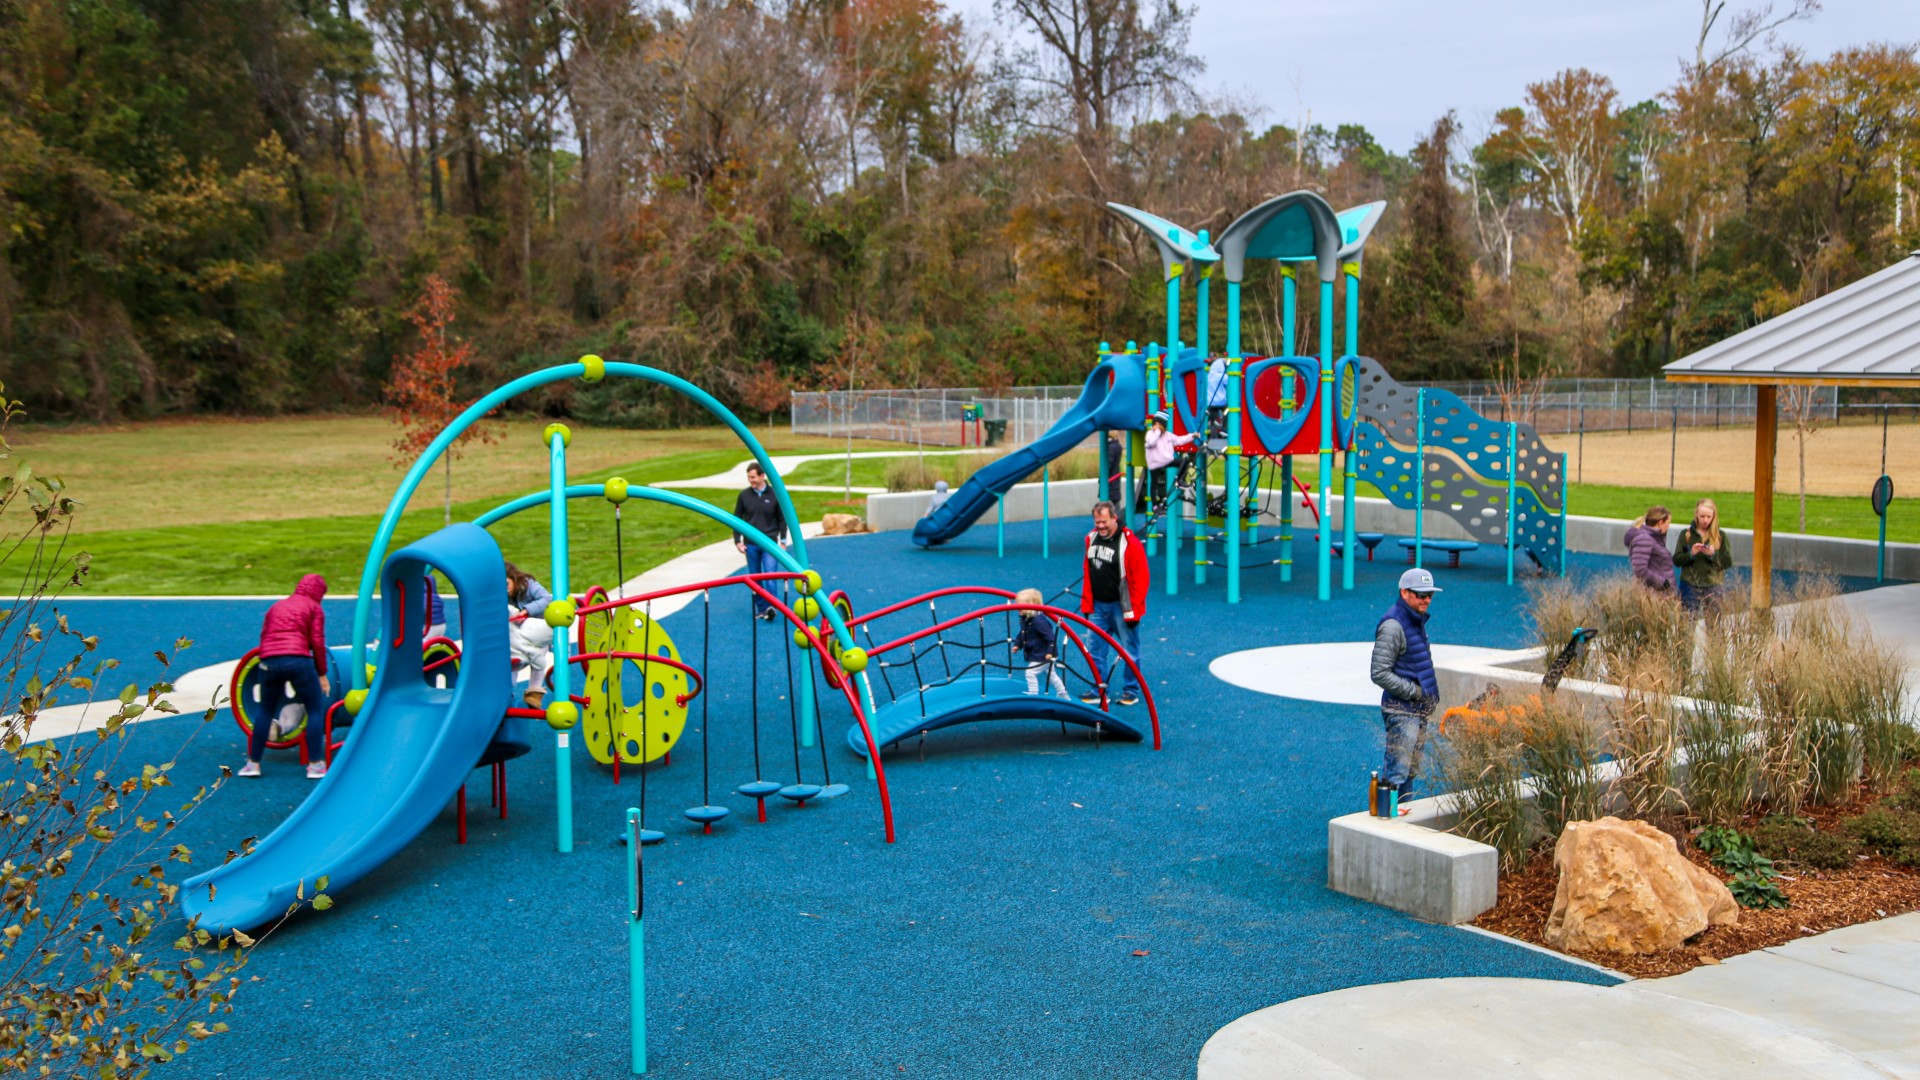 A large outdoor playground with many climbing surfaces